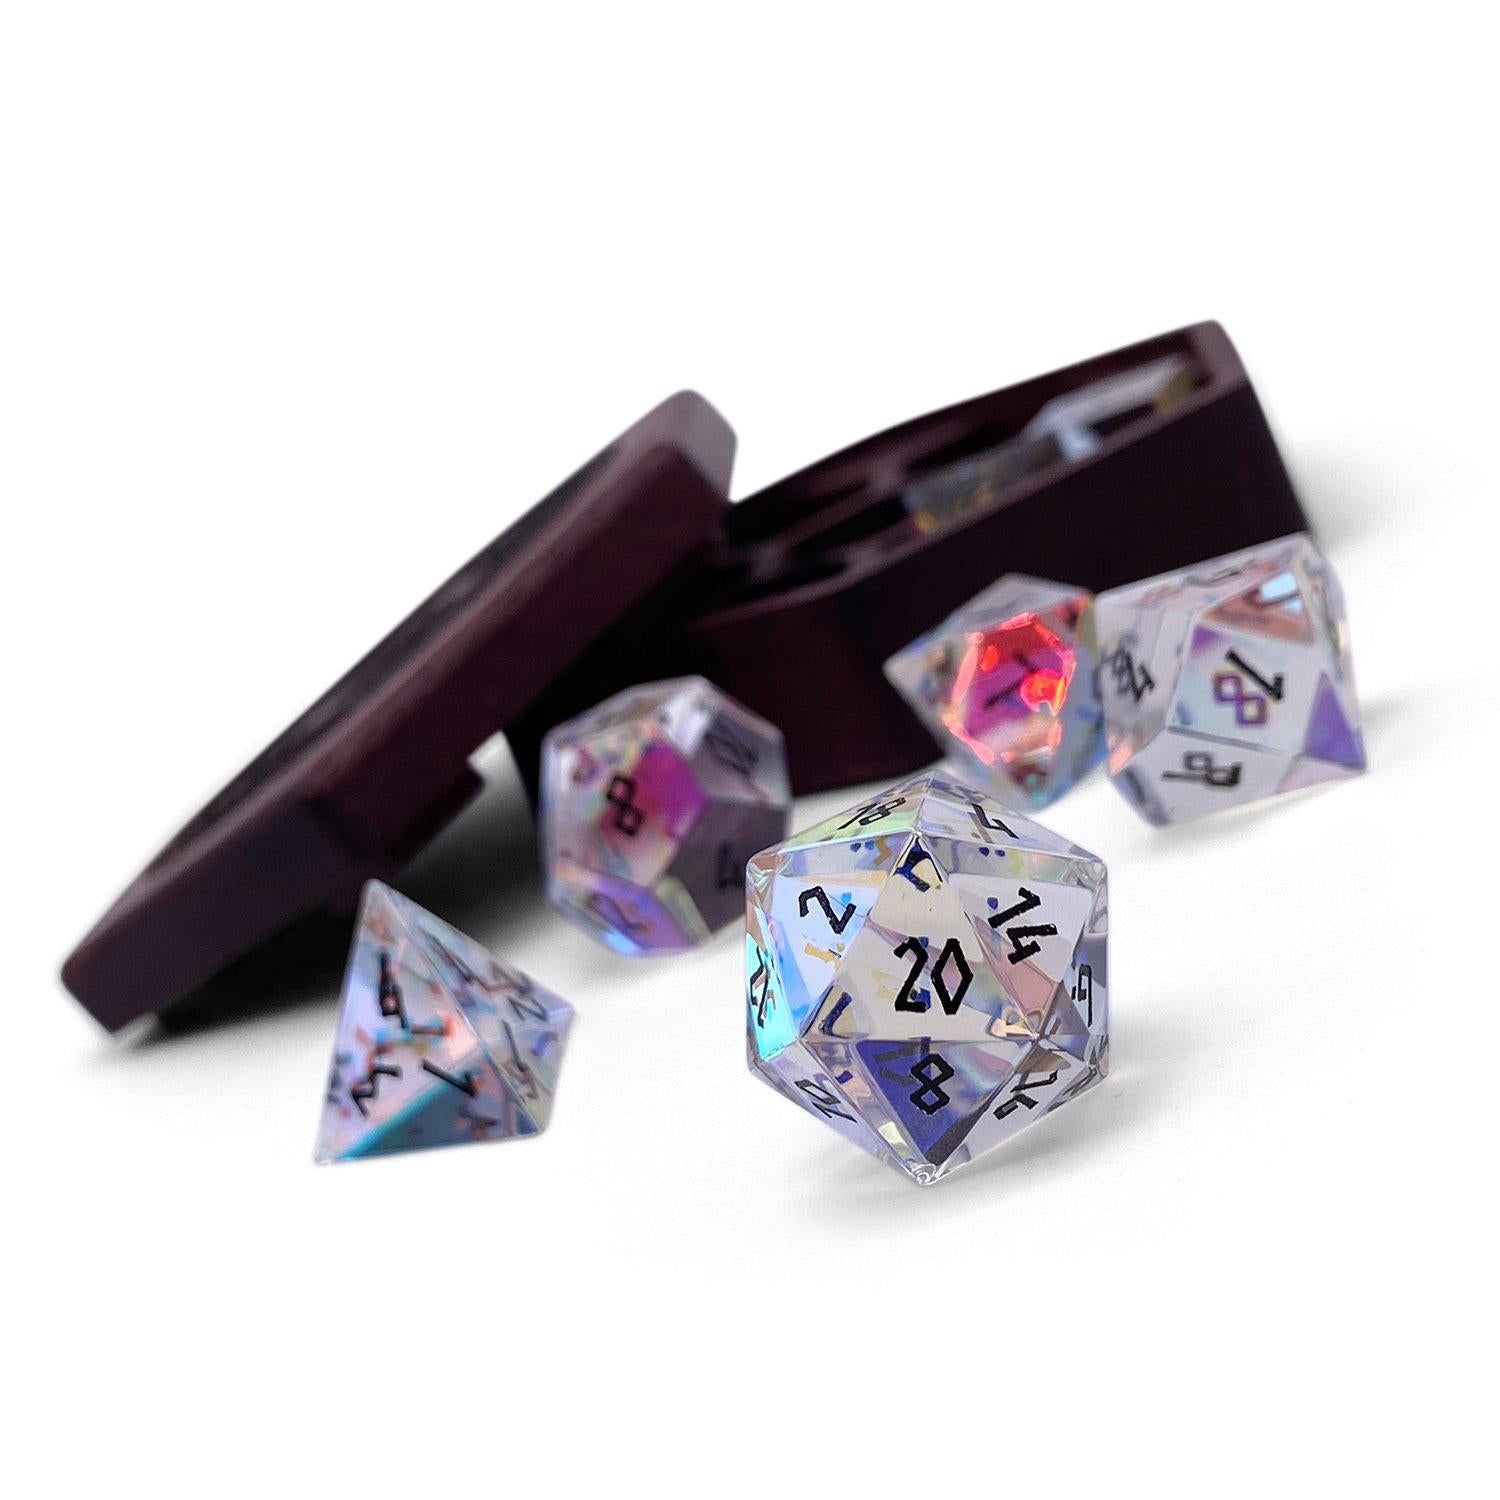 K9 Rainbow Glass 7 Piece Glass Dice Set